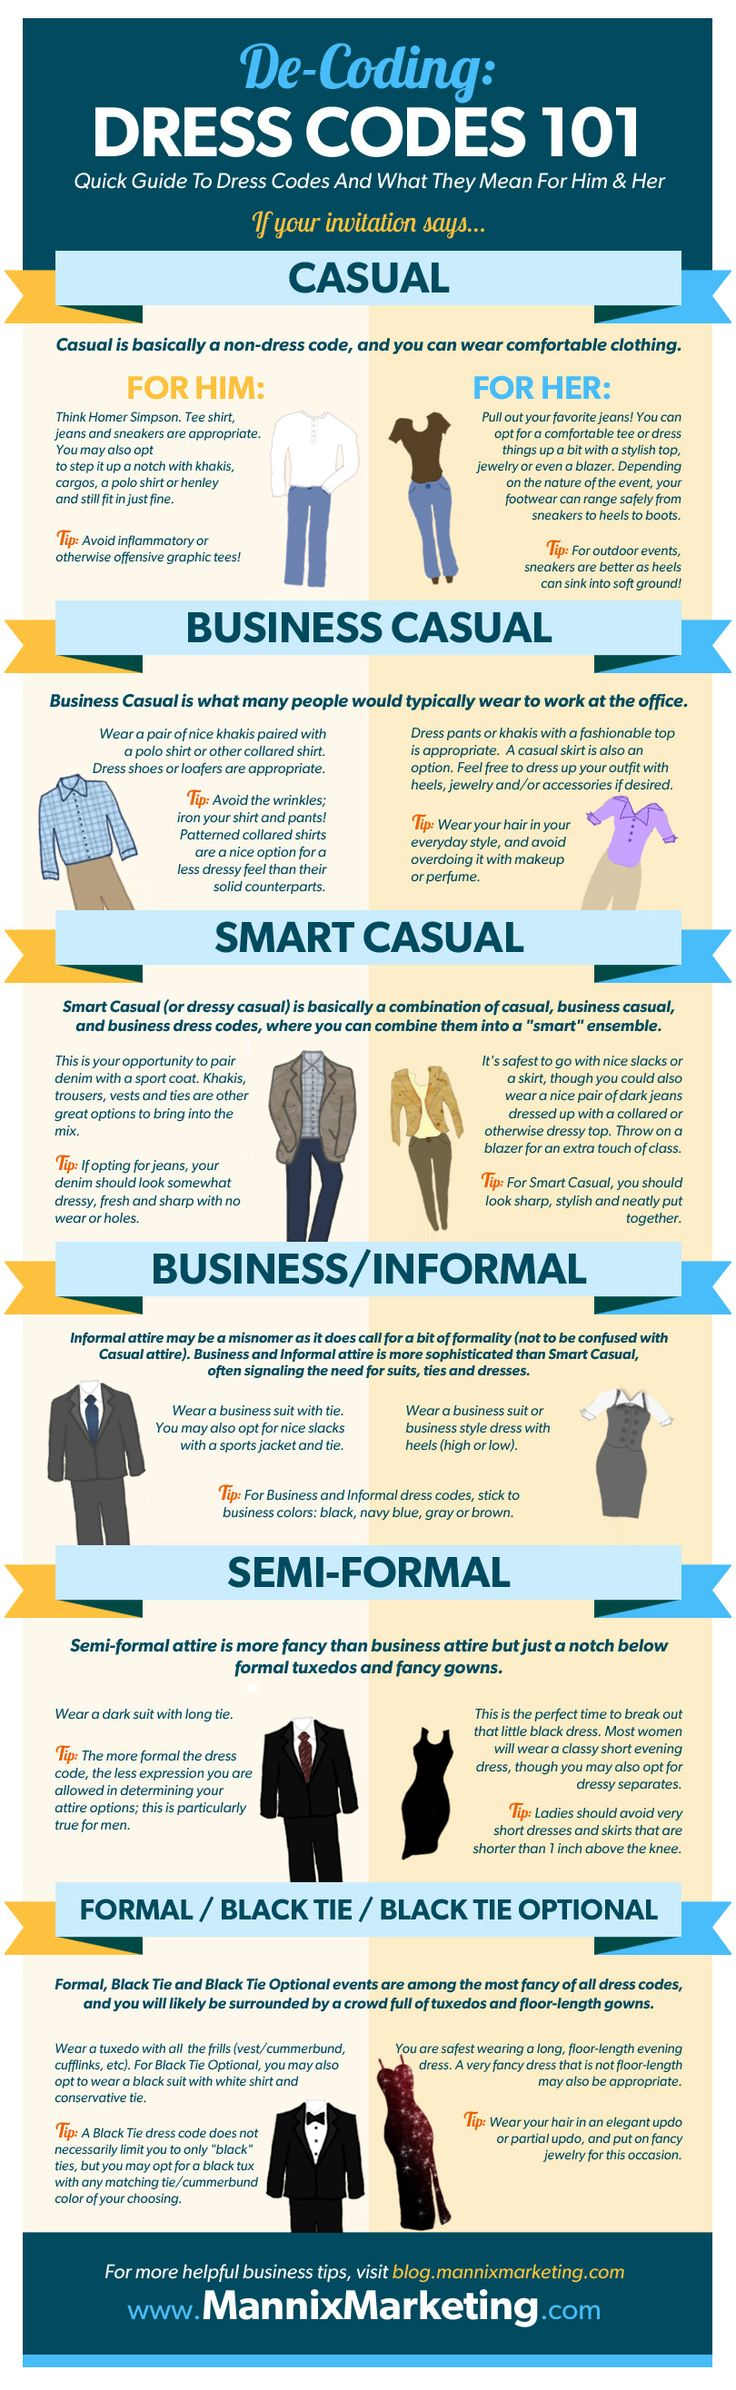 What's the Difference Between #Business Casual and Smart #Casual? A Handy Guide on How to Dress.